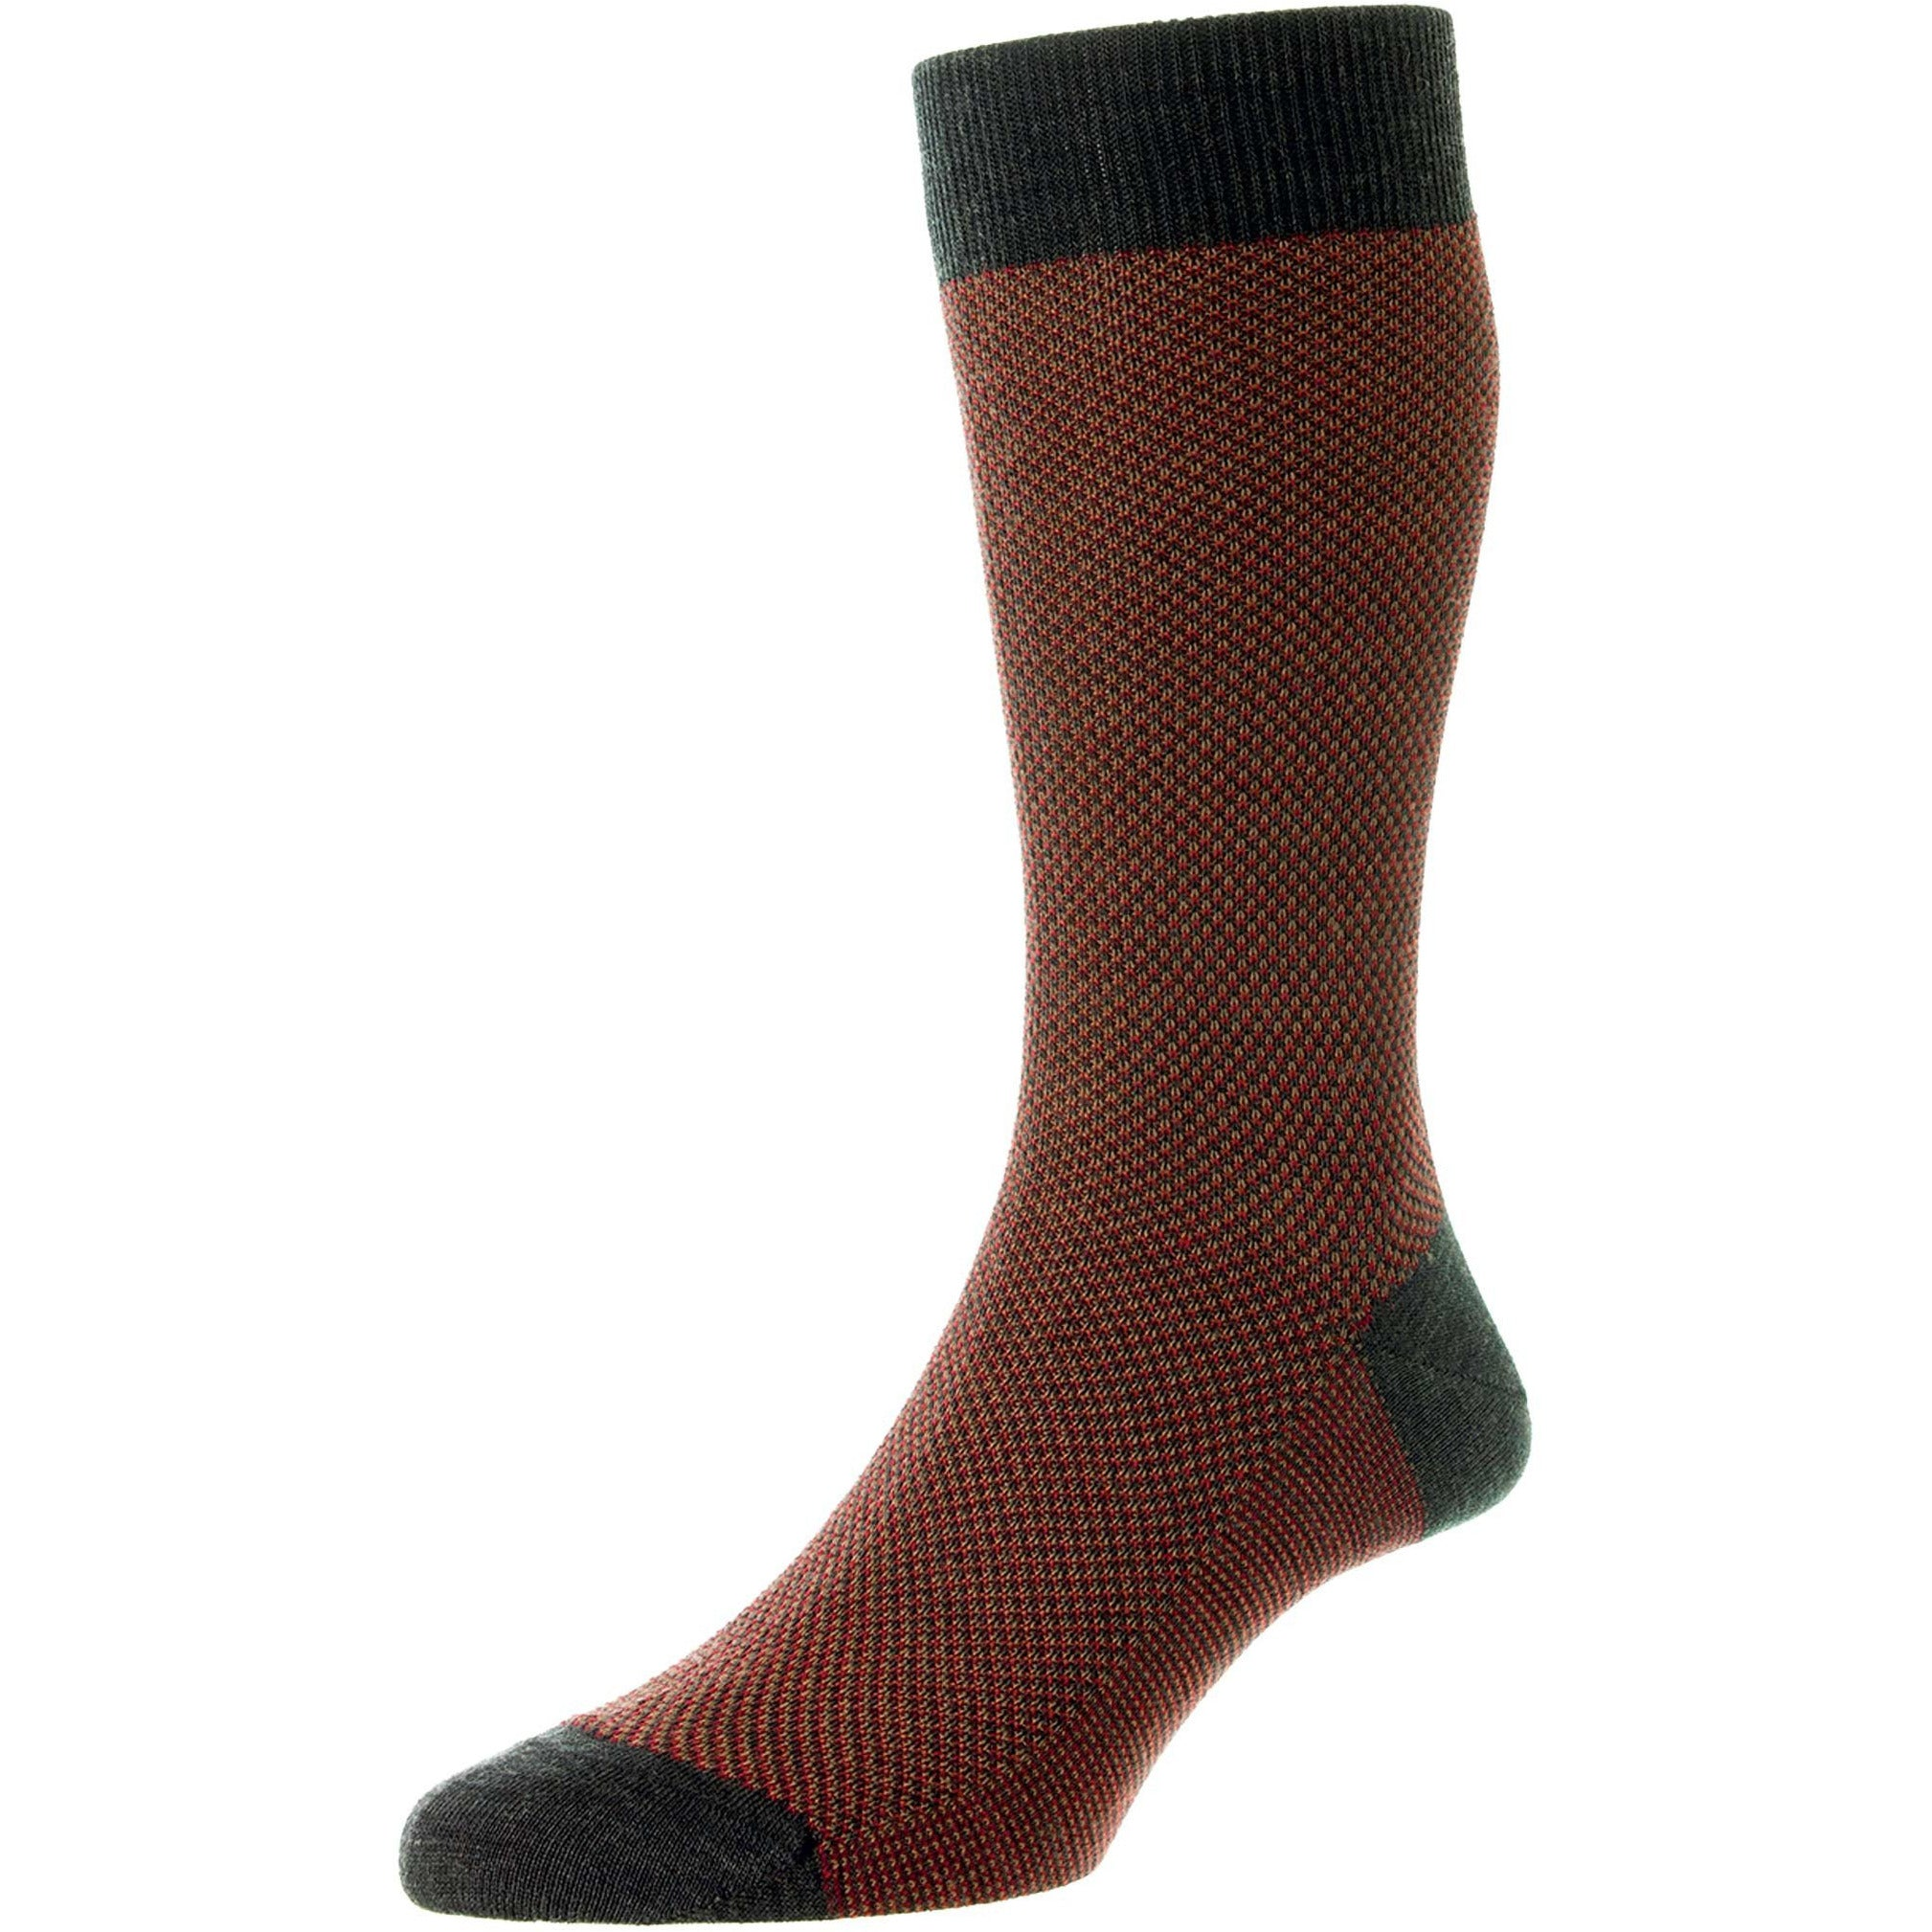 Blenheim 3-Color Birdseye Merino Wool Socks